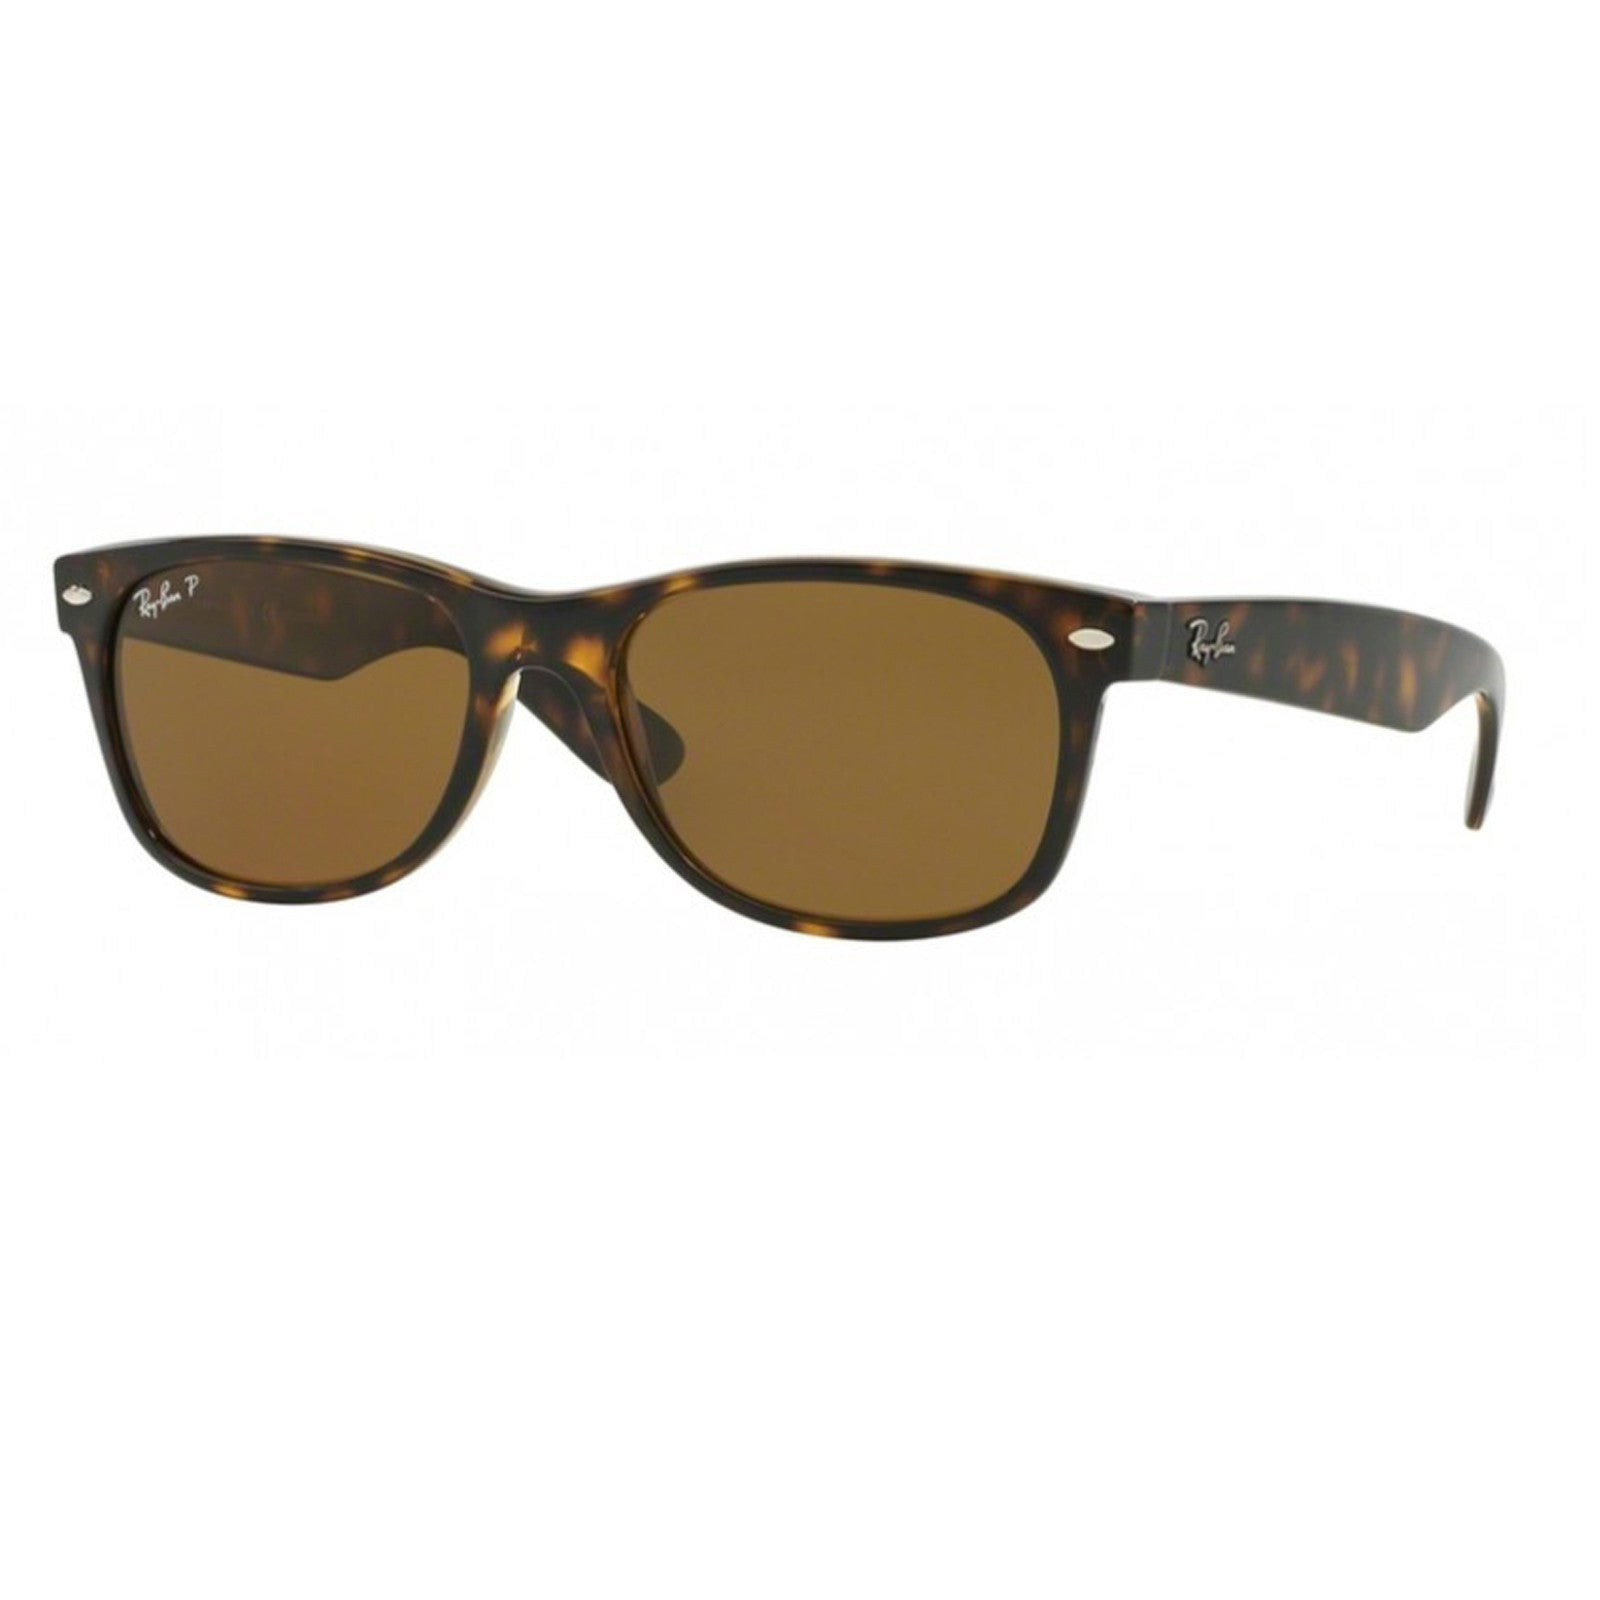 Ray-ban New Wayfarer RB2132 902/57